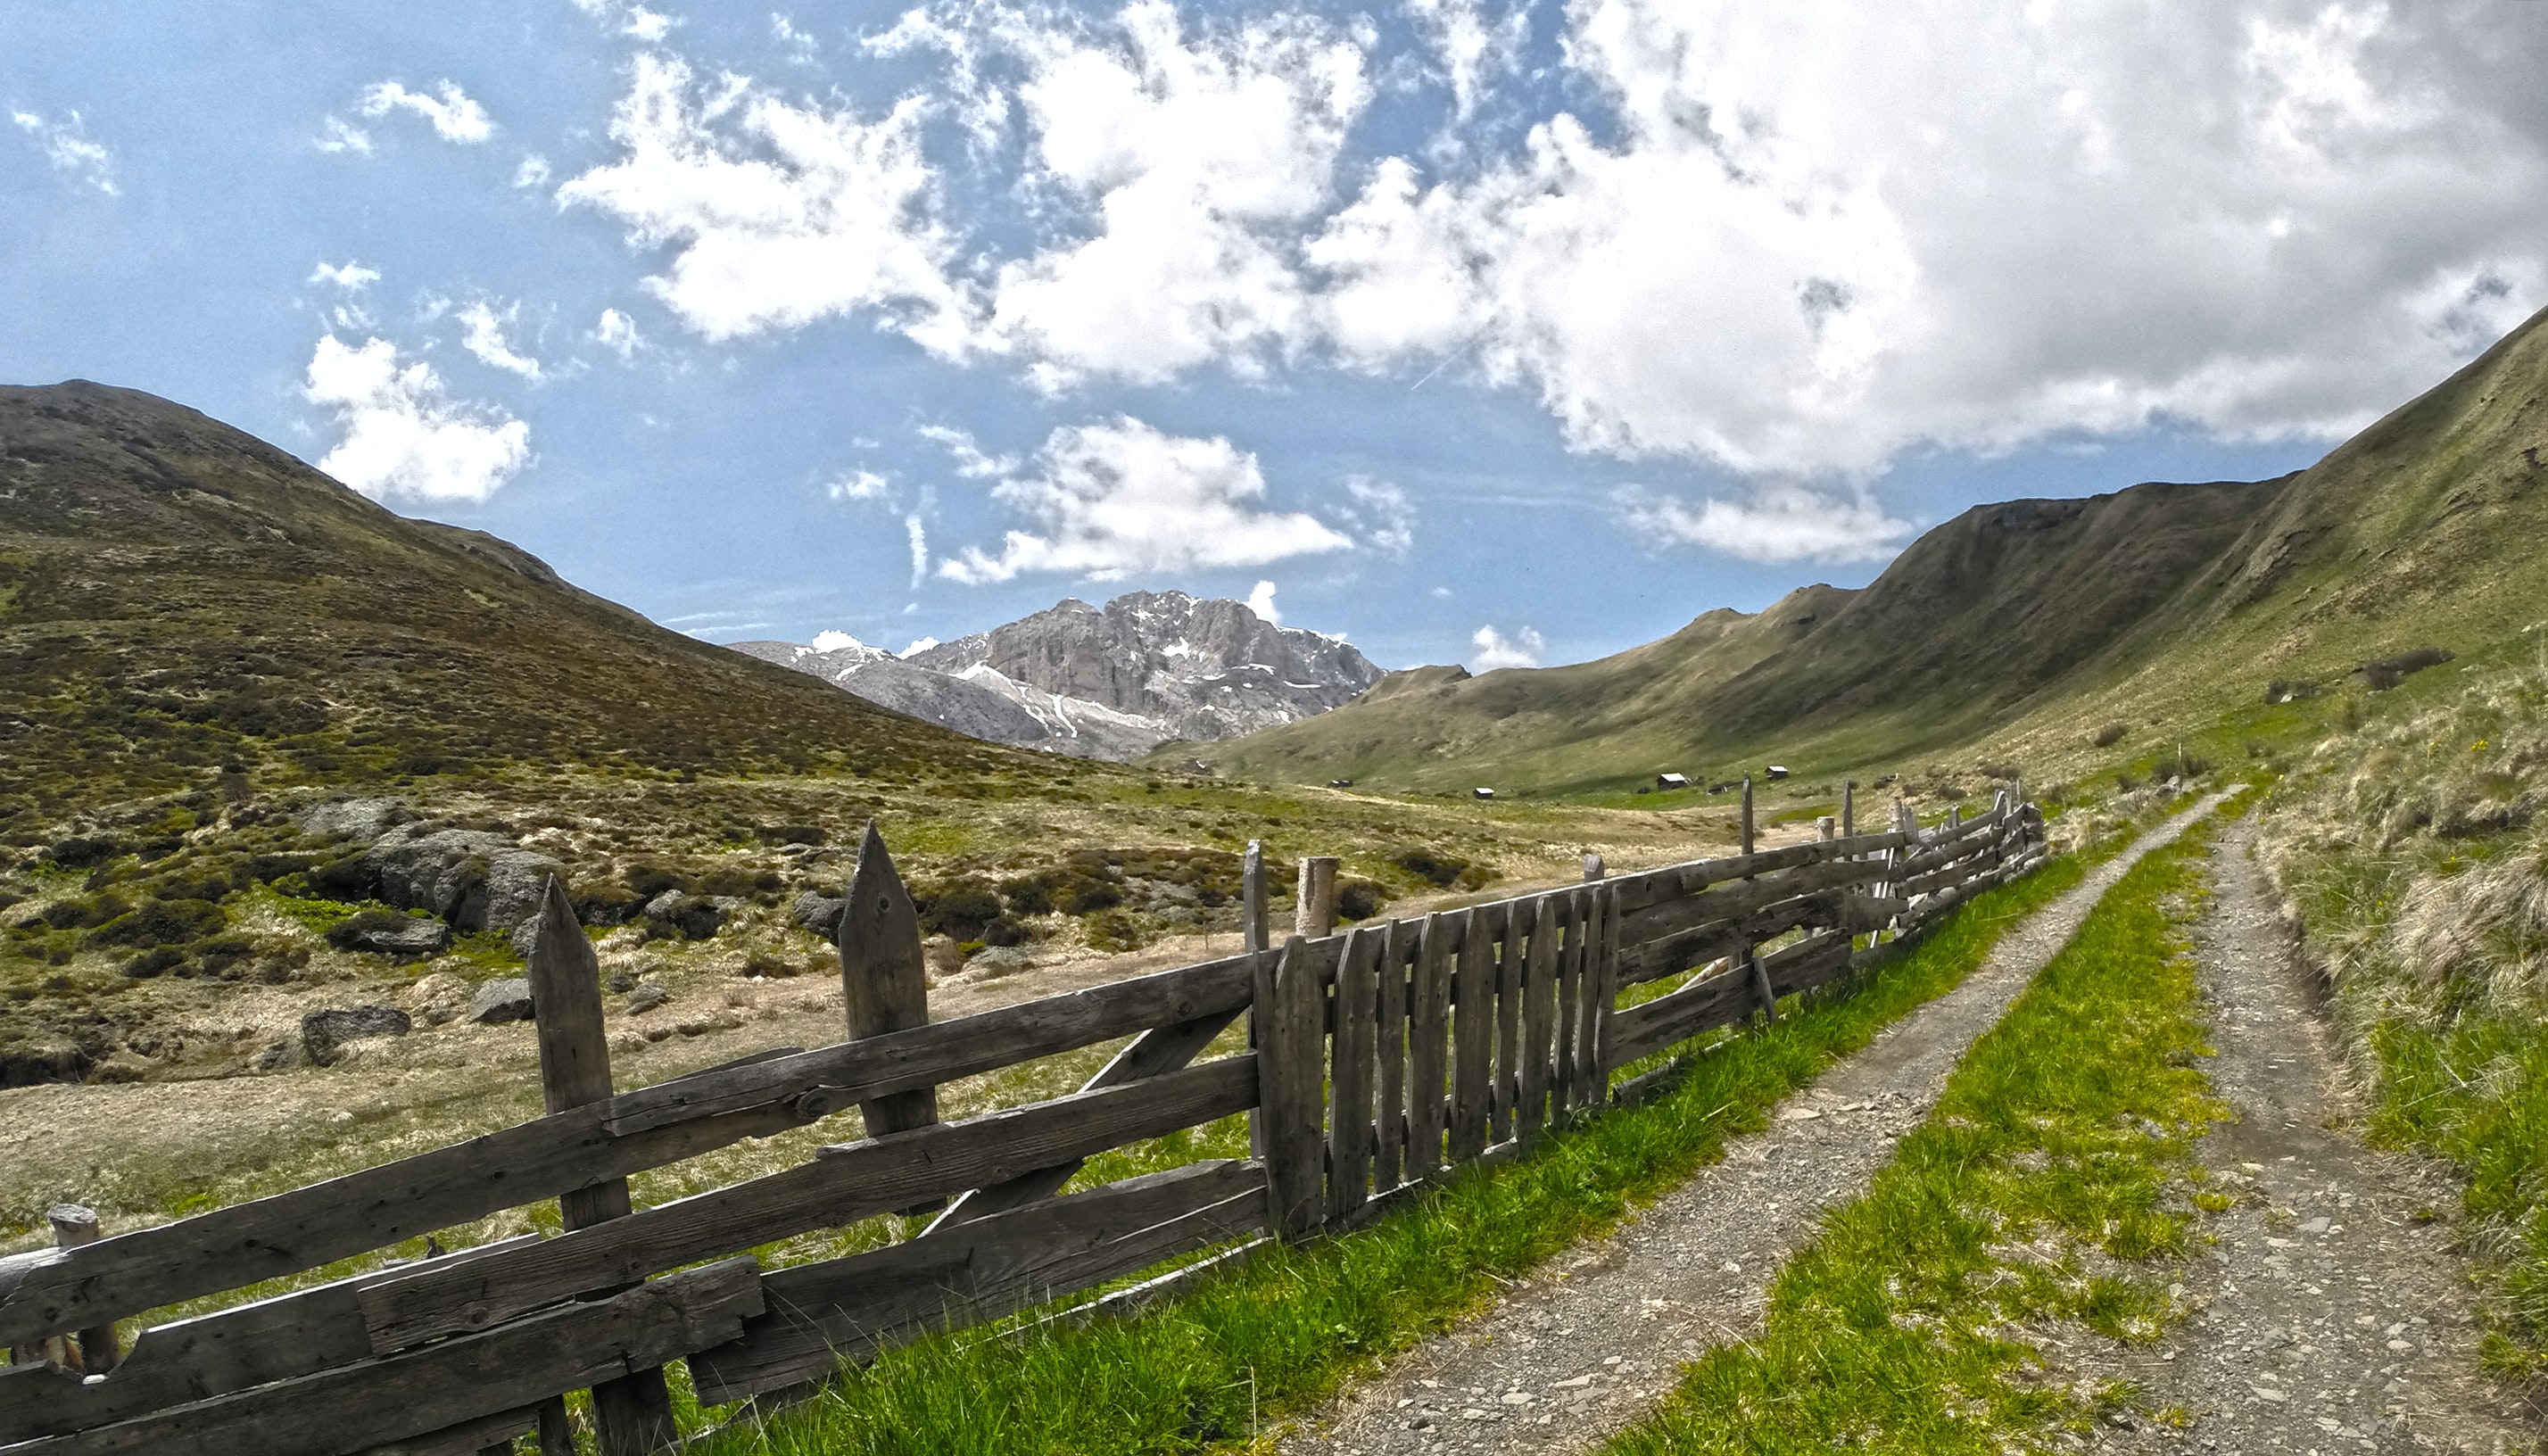 brown wooden fence on mountain